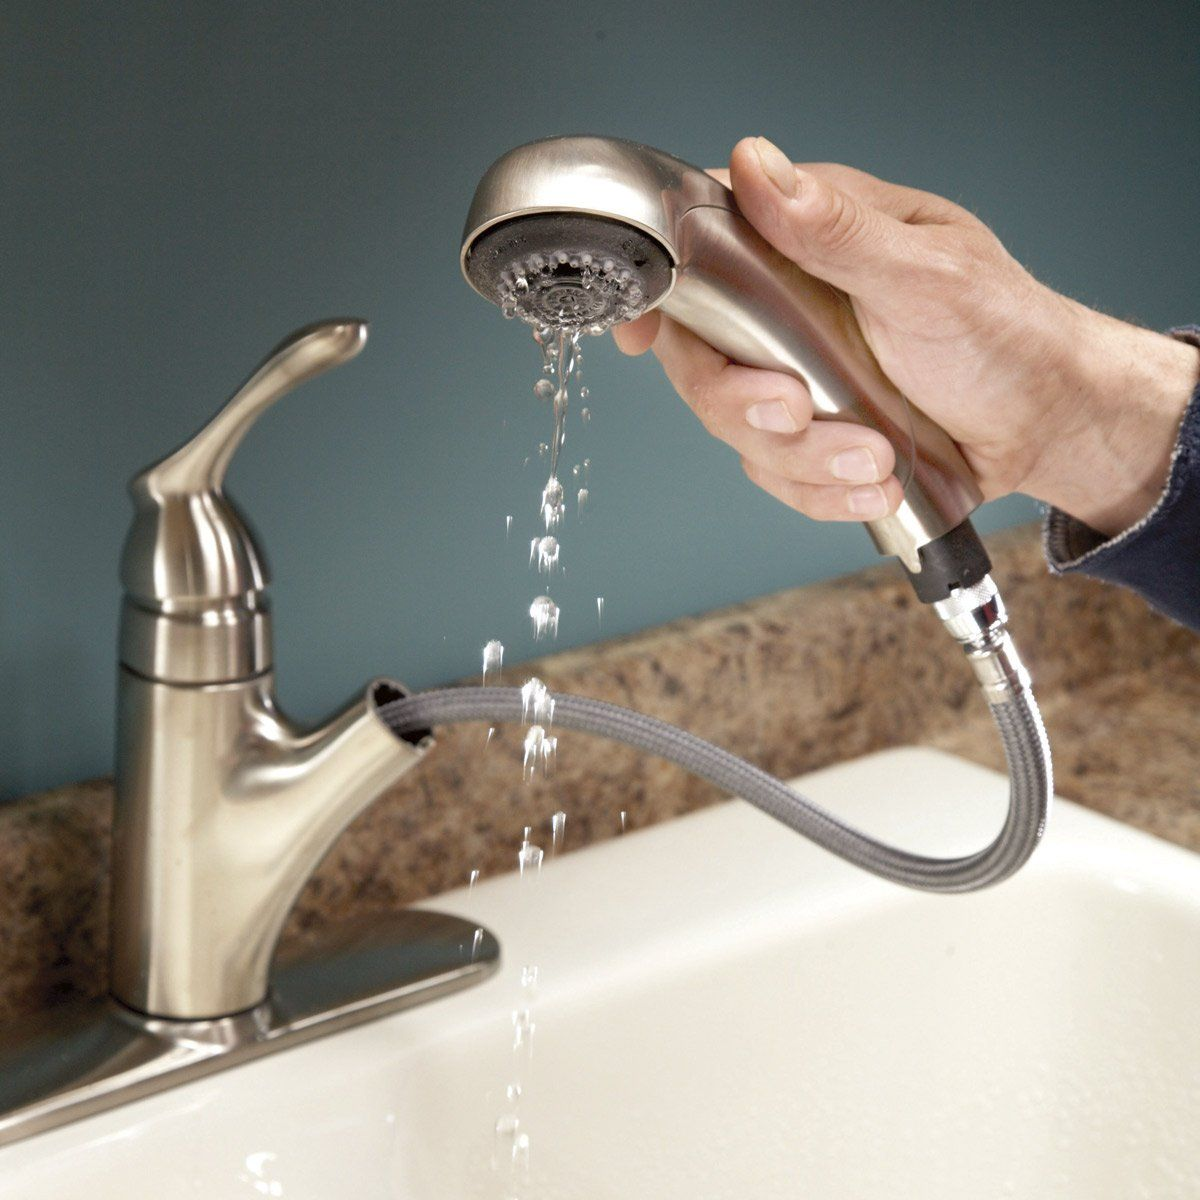 Slow Running Water: Unclog the Aerator in 2020 | Faucet ...